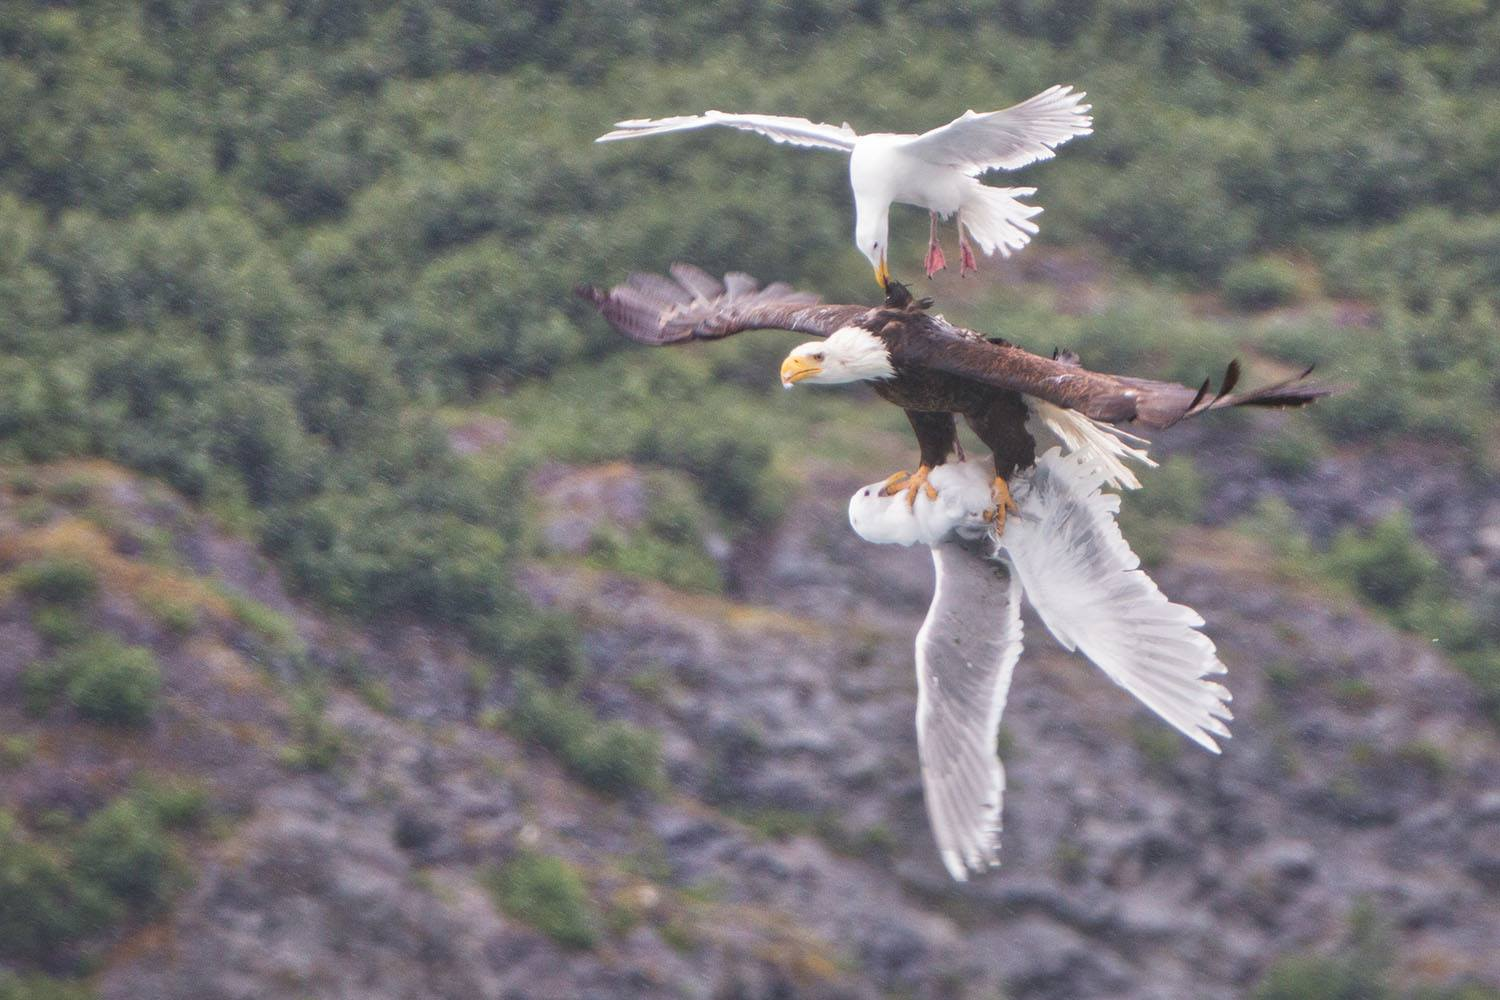 Photo: 2 Seagulls Attack Bald Eagle in Flight — See Who Comes Out on Top